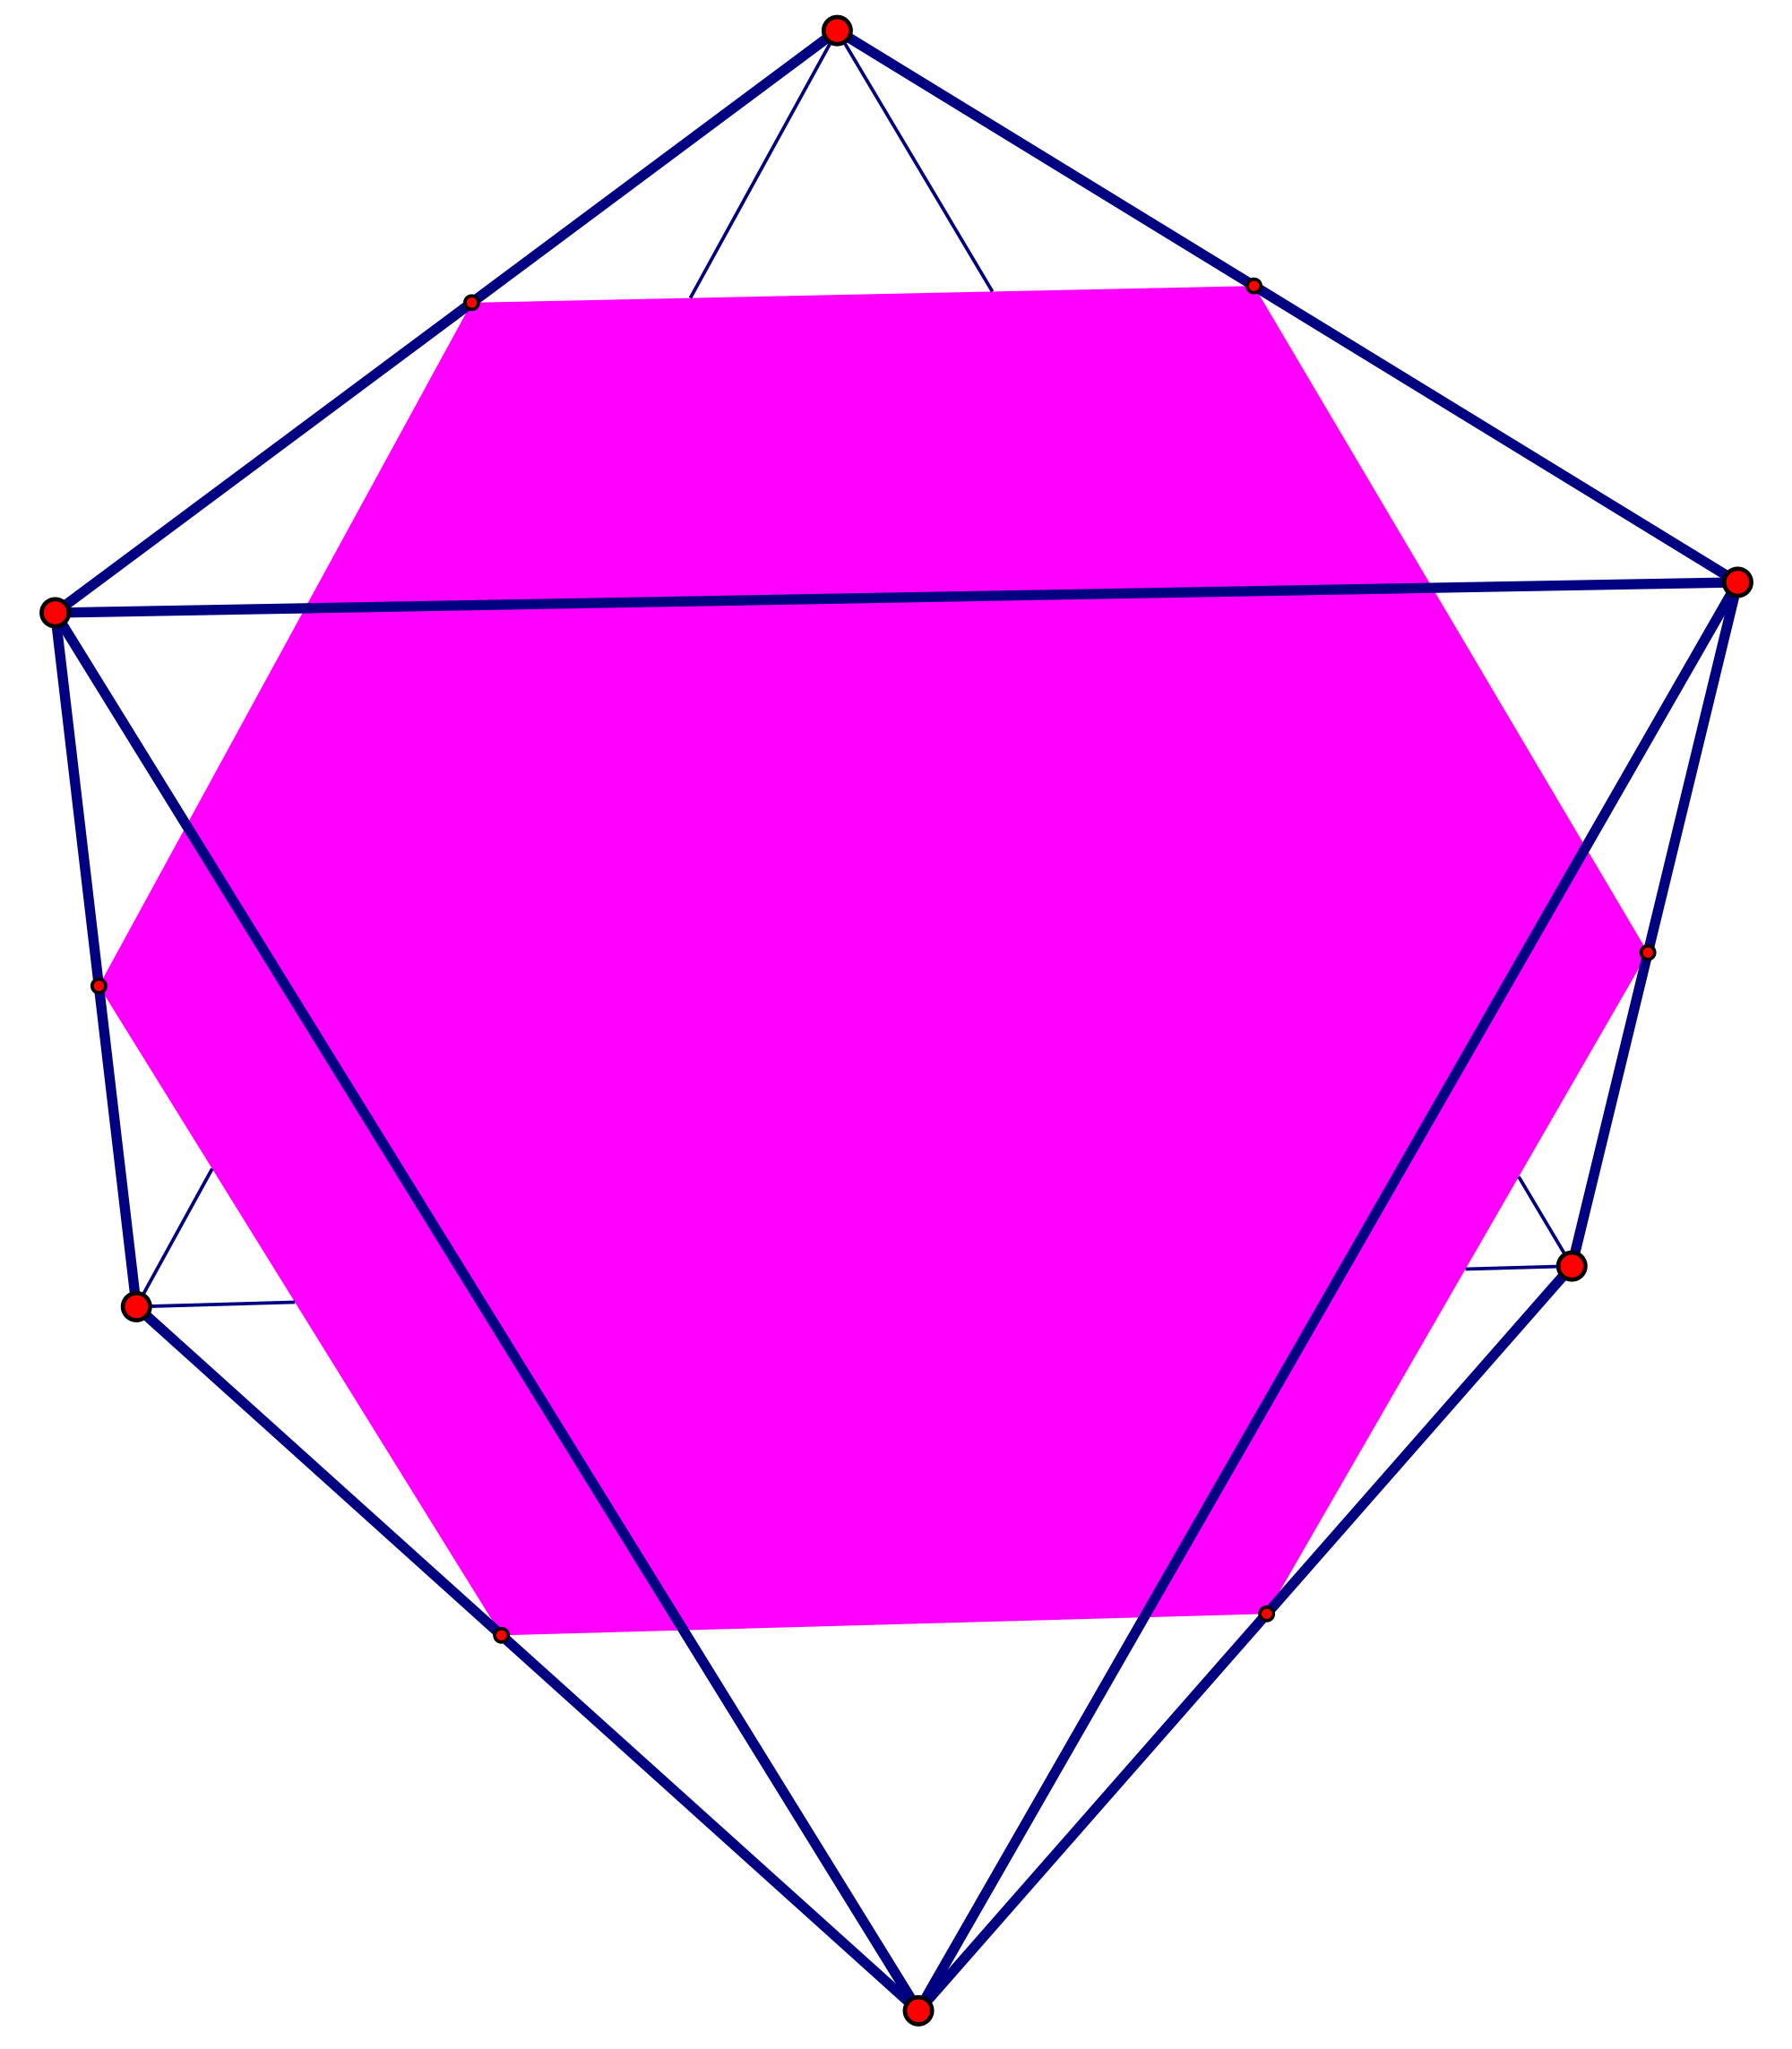 Hexagon clipart pink. File in octahedron svg